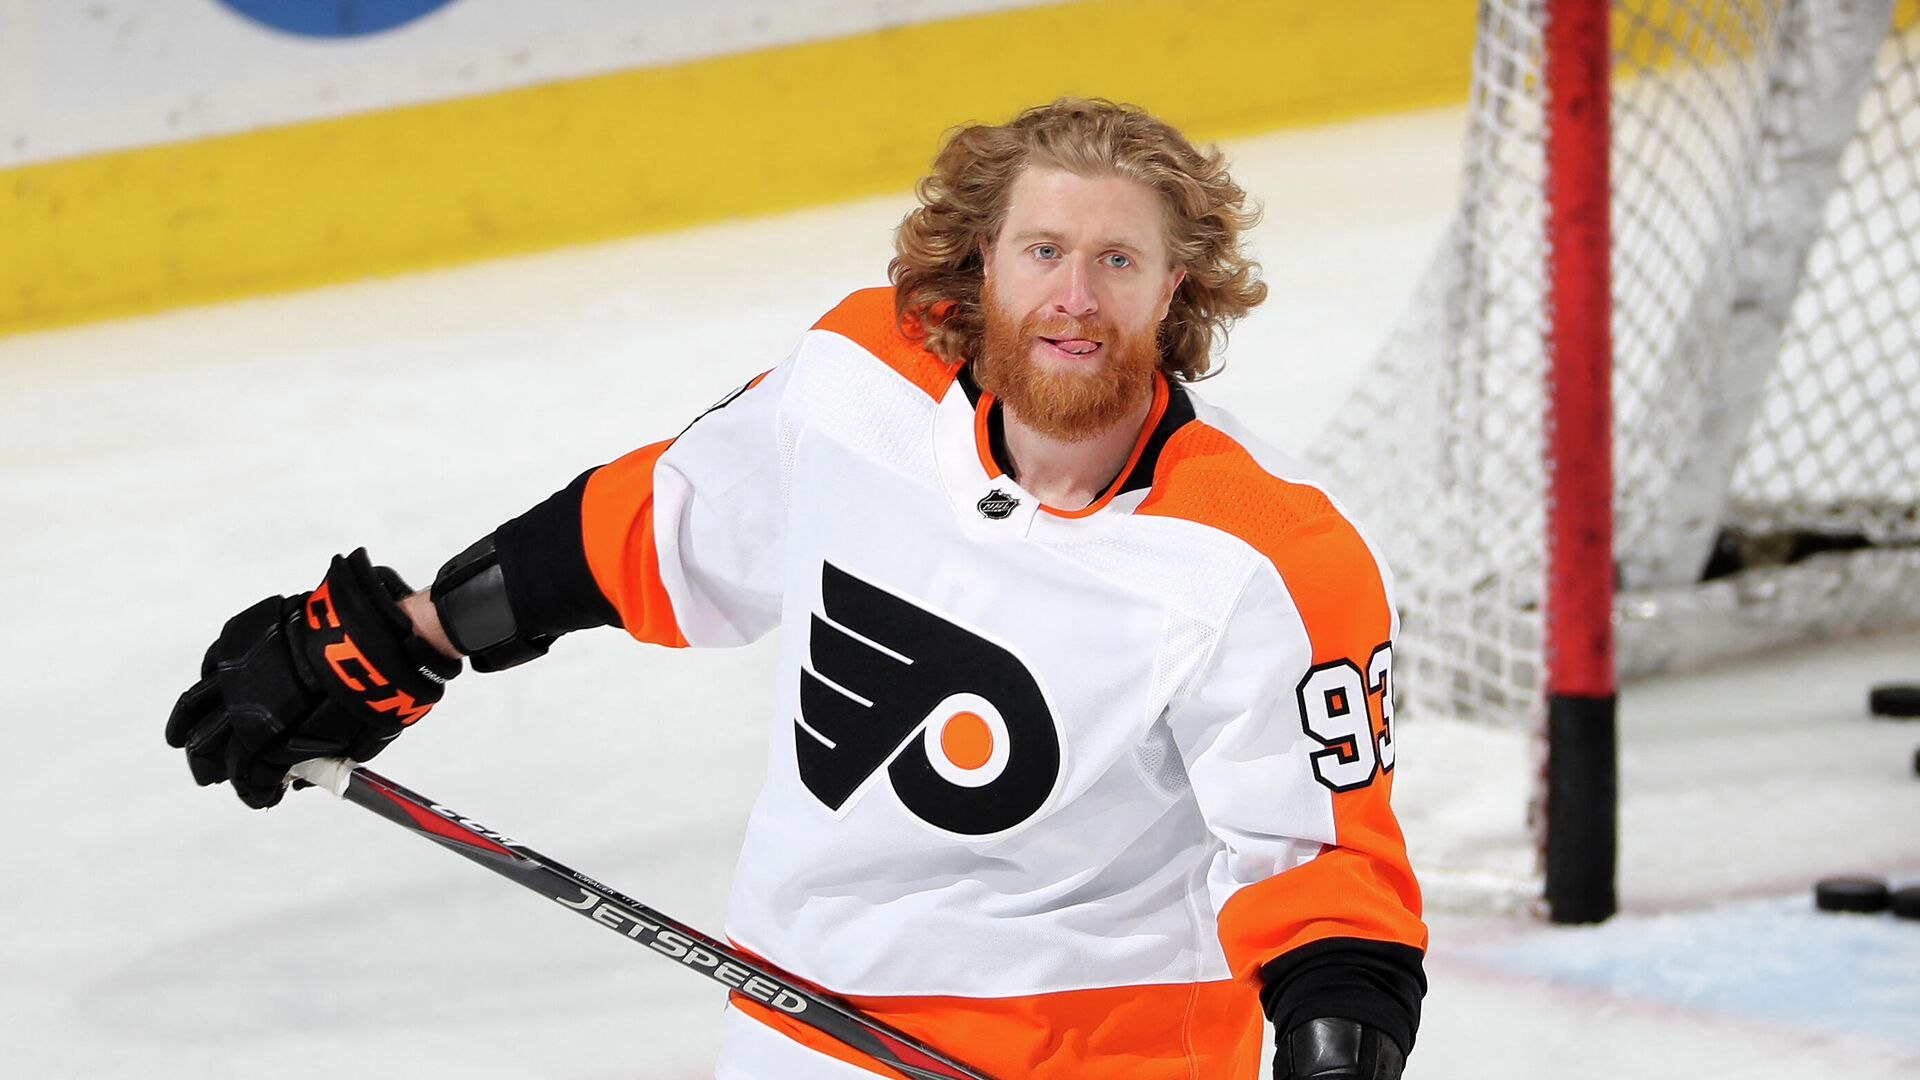 NEWARK, NEW JERSEY - APRIL 27: Jakub Voracek #93 of the Philadelphia Flyers skates during warm ups before the game against the New Jersey Devils at Prudential Center on April 27, 2021 in Newark, New Jersey.   Elsa/Getty Images/AFP (Photo by ELSA / GETTY IMAGES NORTH AMERICA / Getty Images via AFP) - РИА Новости, 1920, 25.07.2021